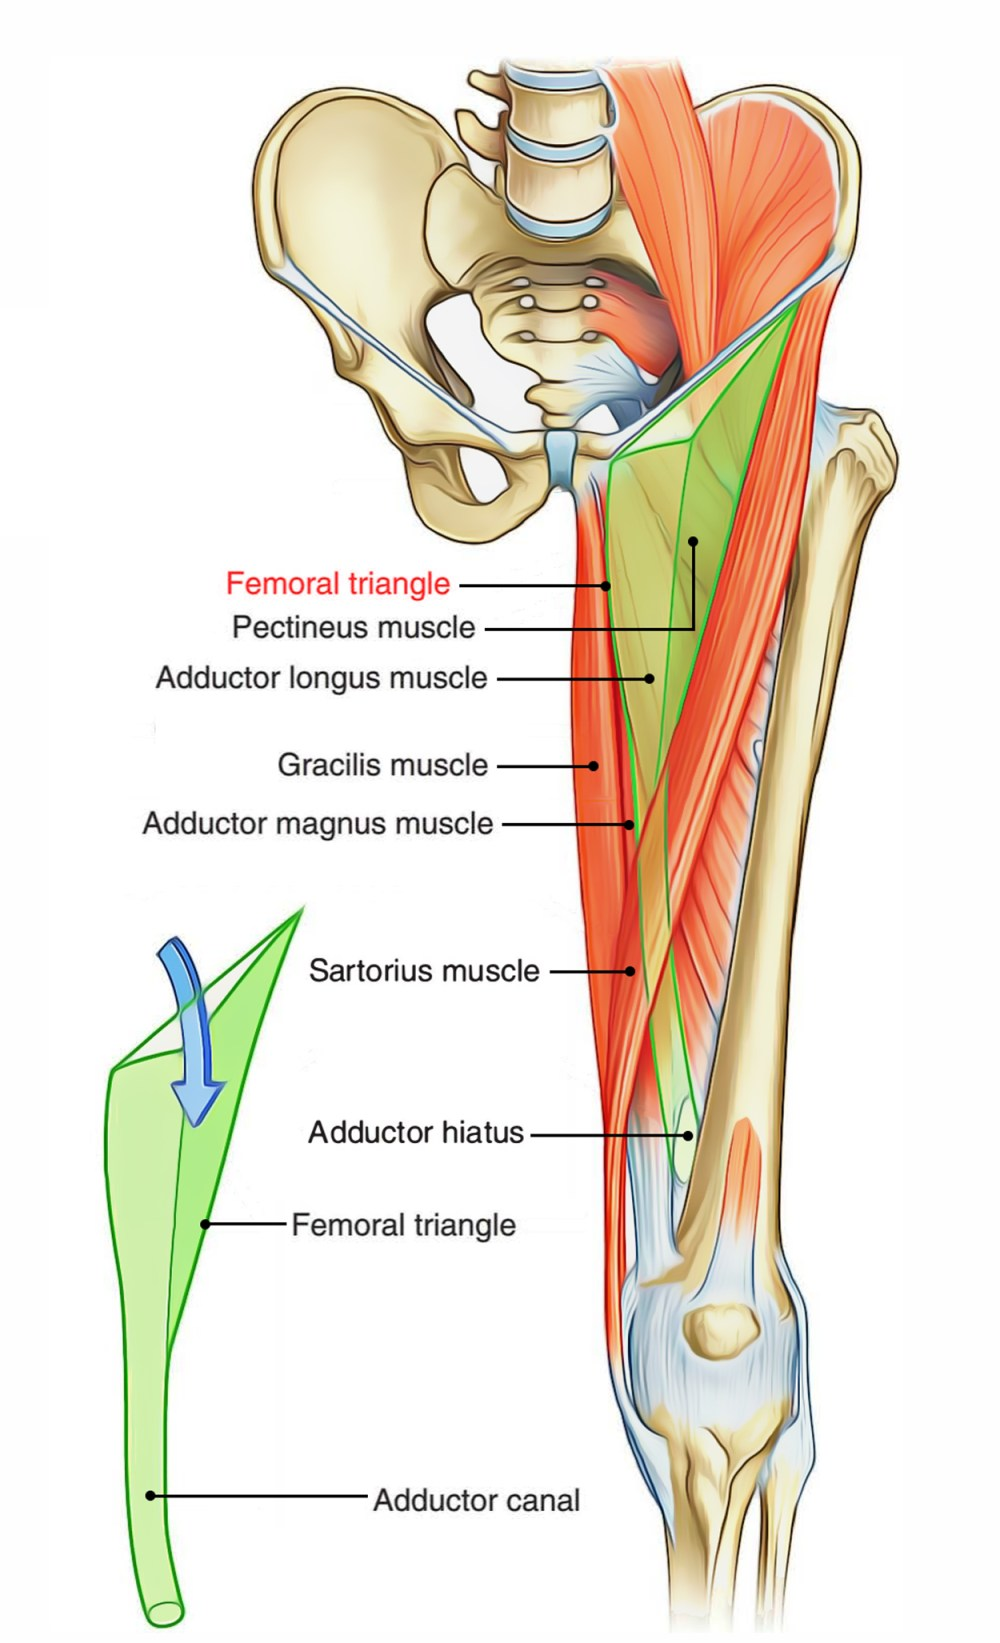 medium resolution of boundaries of the femoral triangle